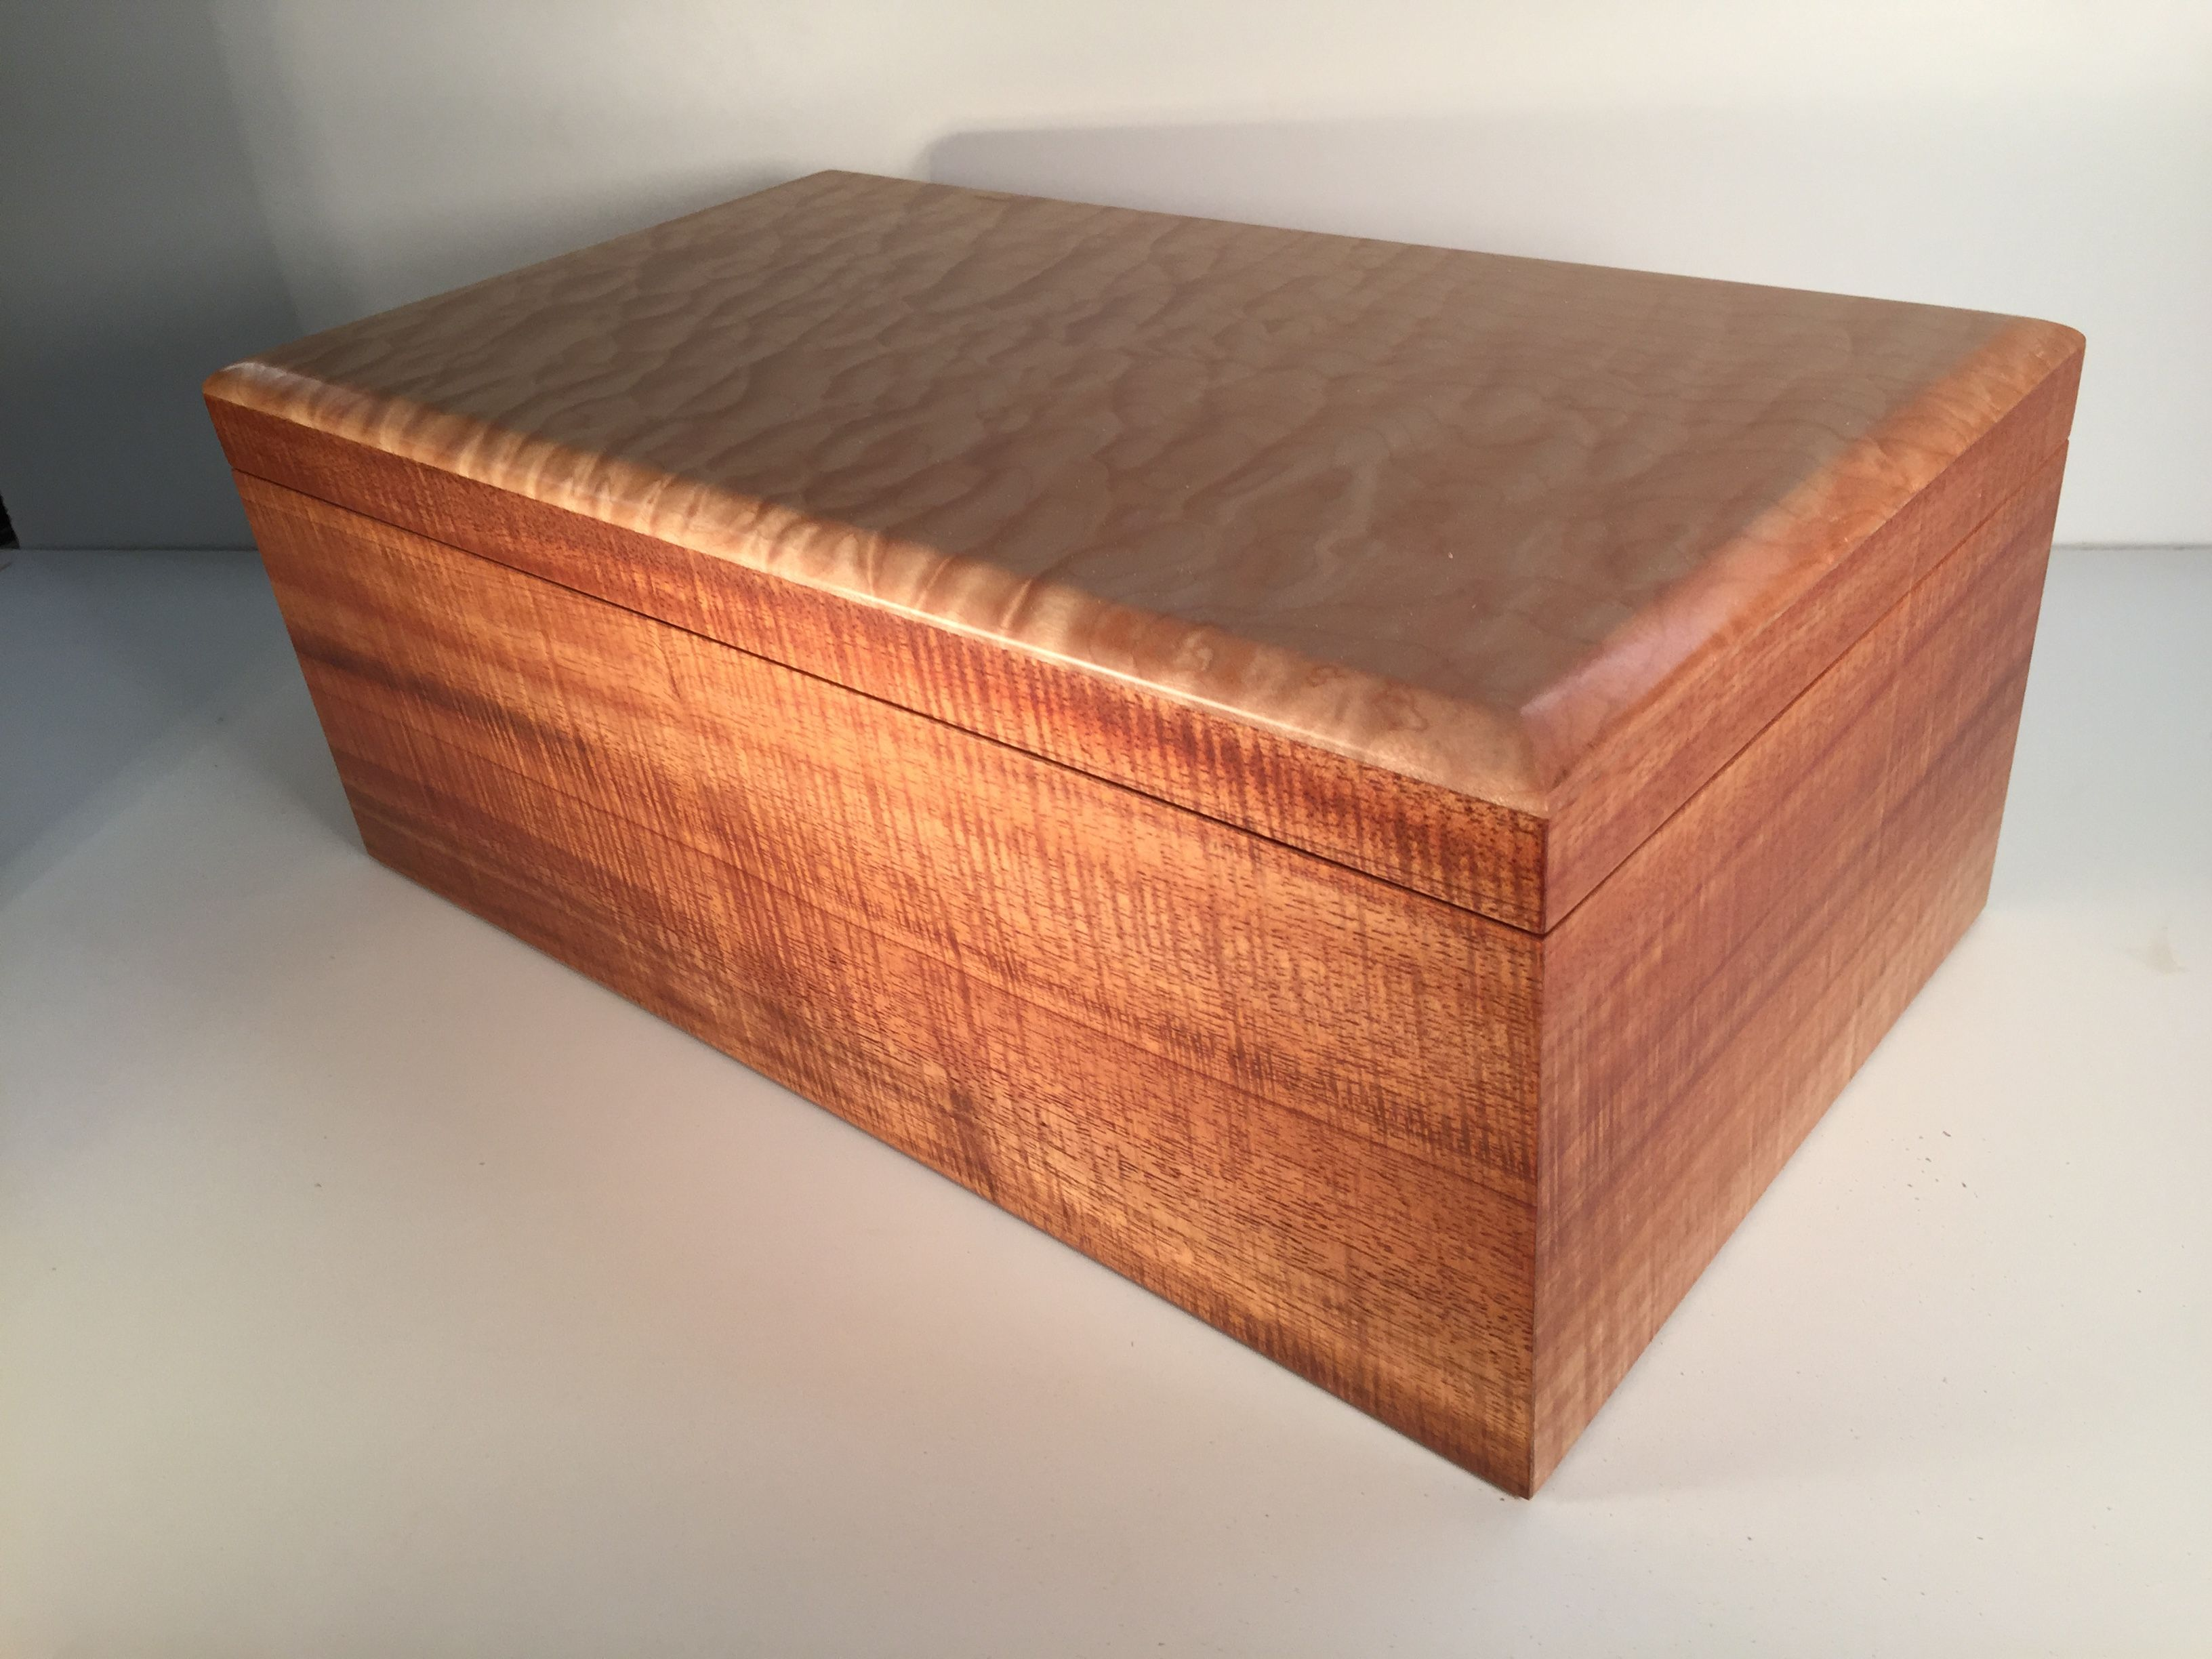 hand made zebrawood end grain cutting board by carolina wood